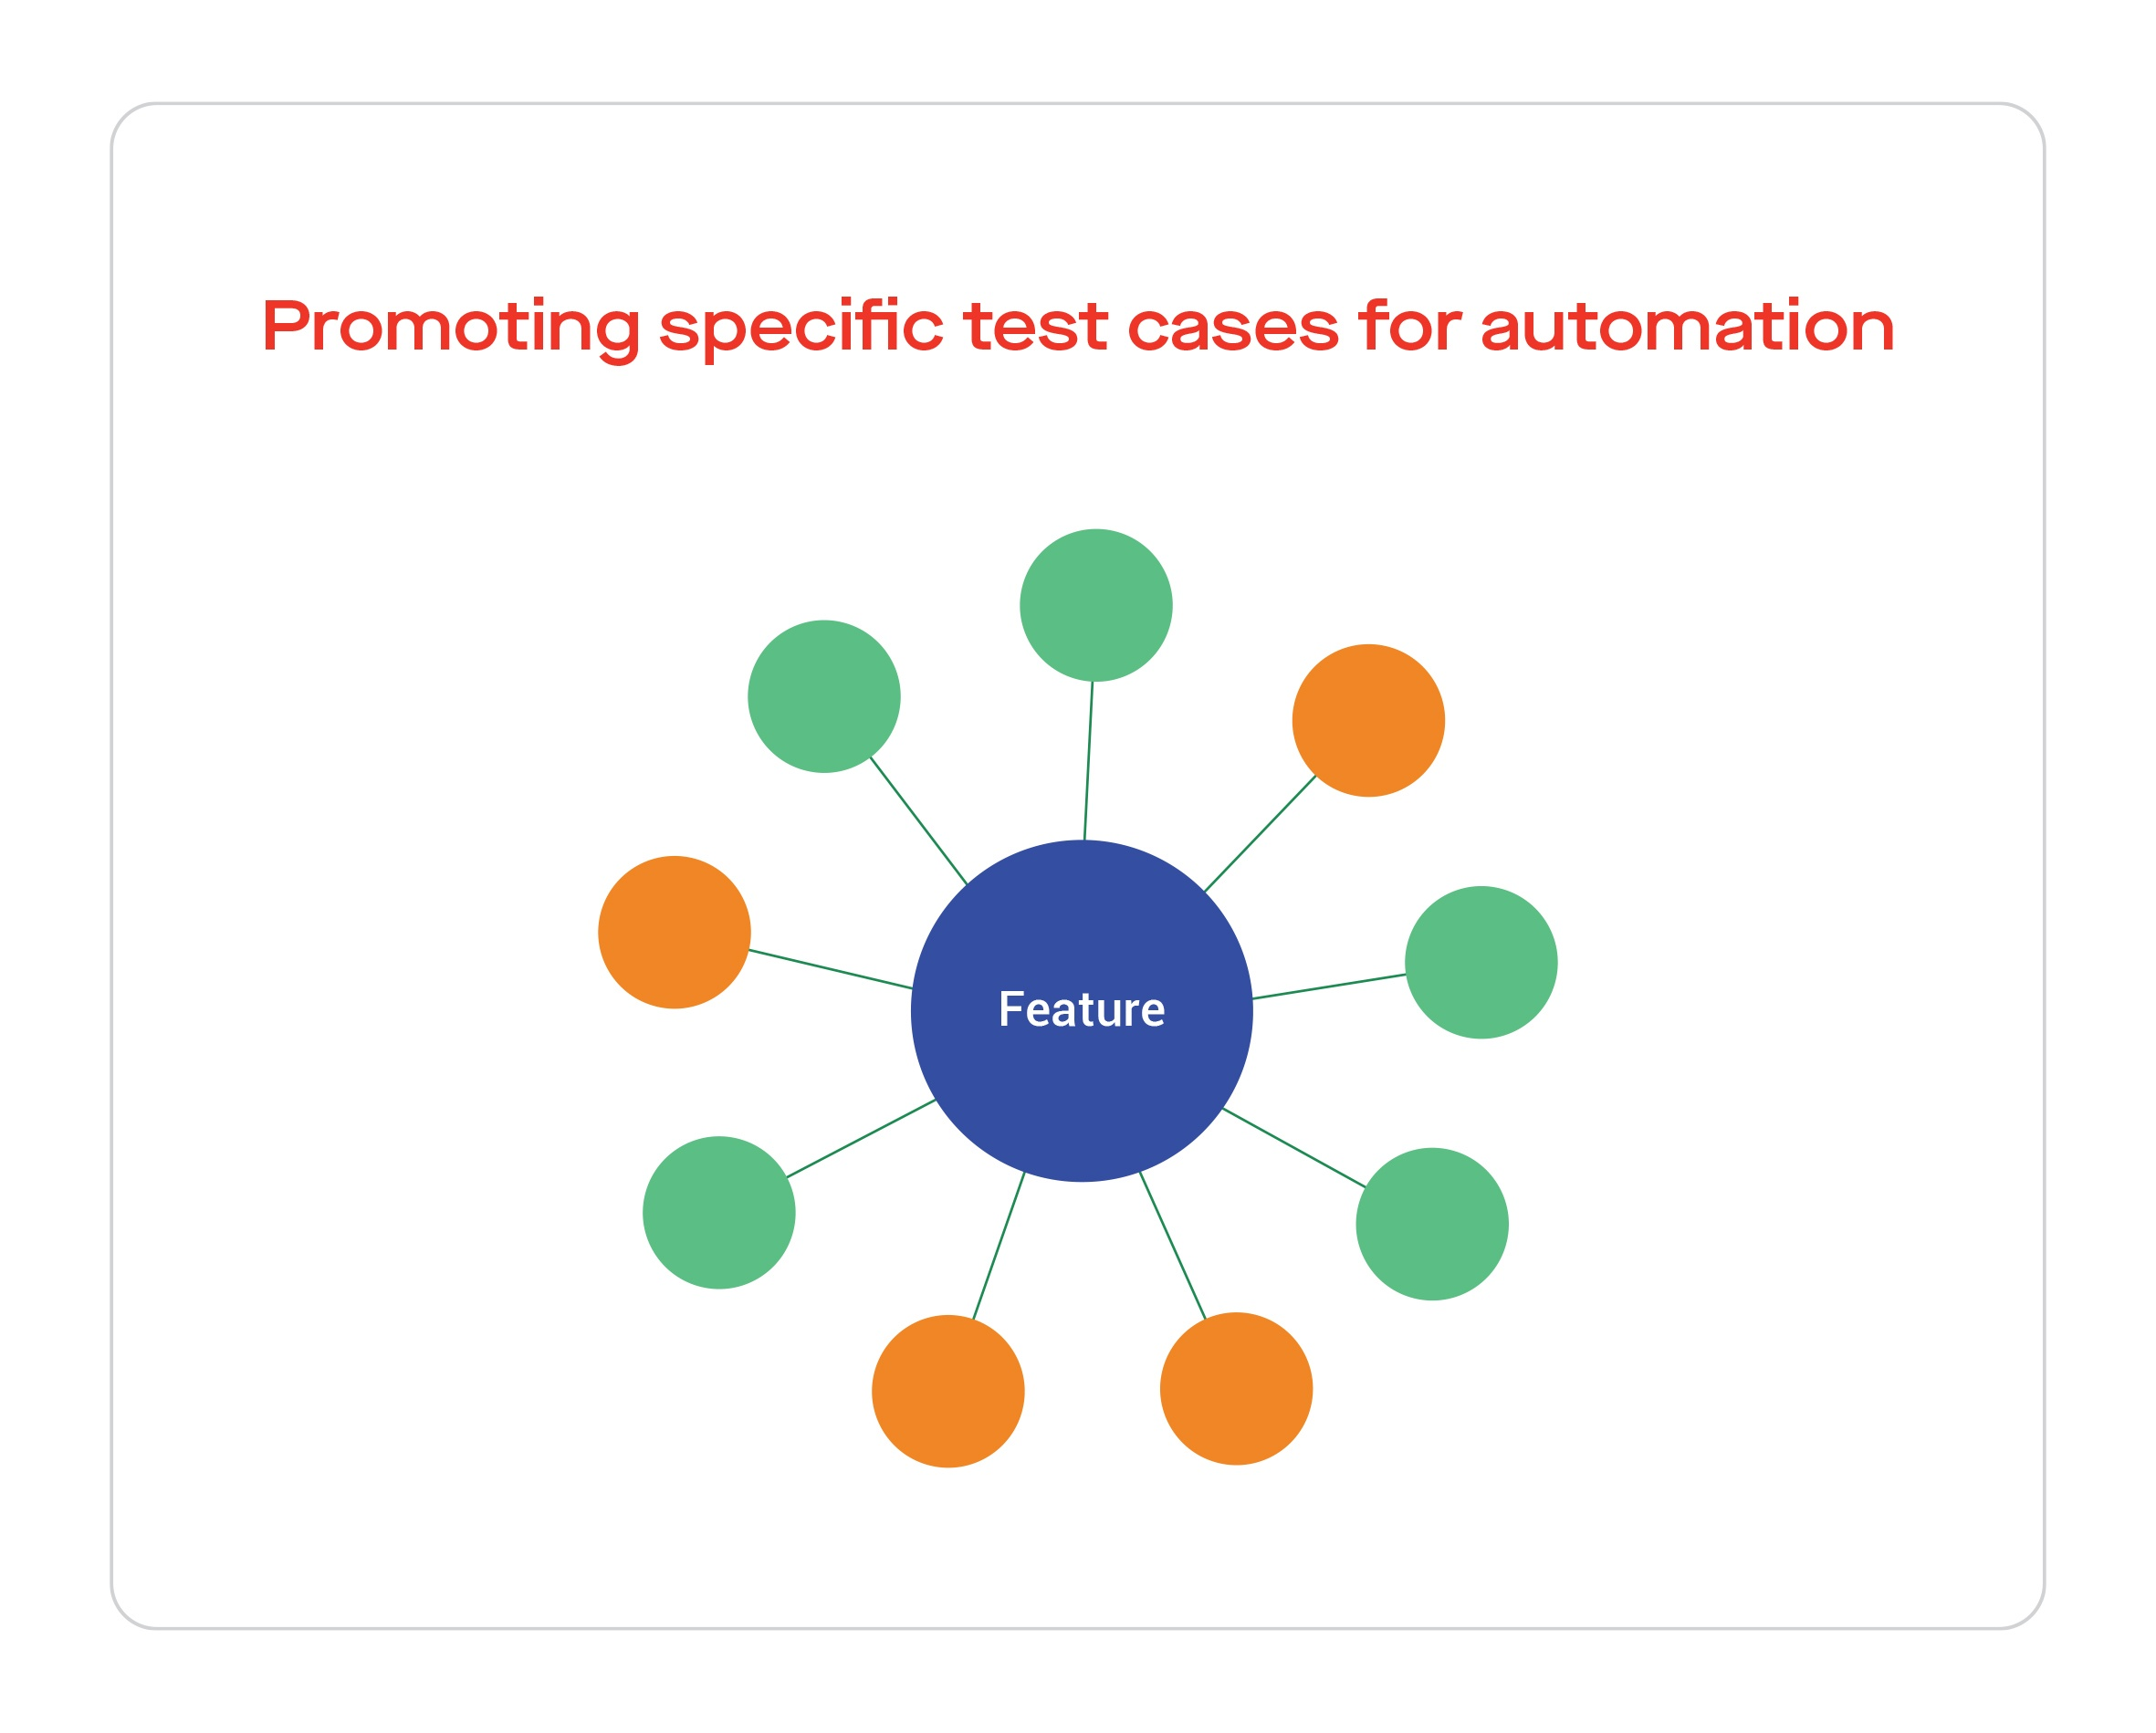 Promoting specific test cases for automation